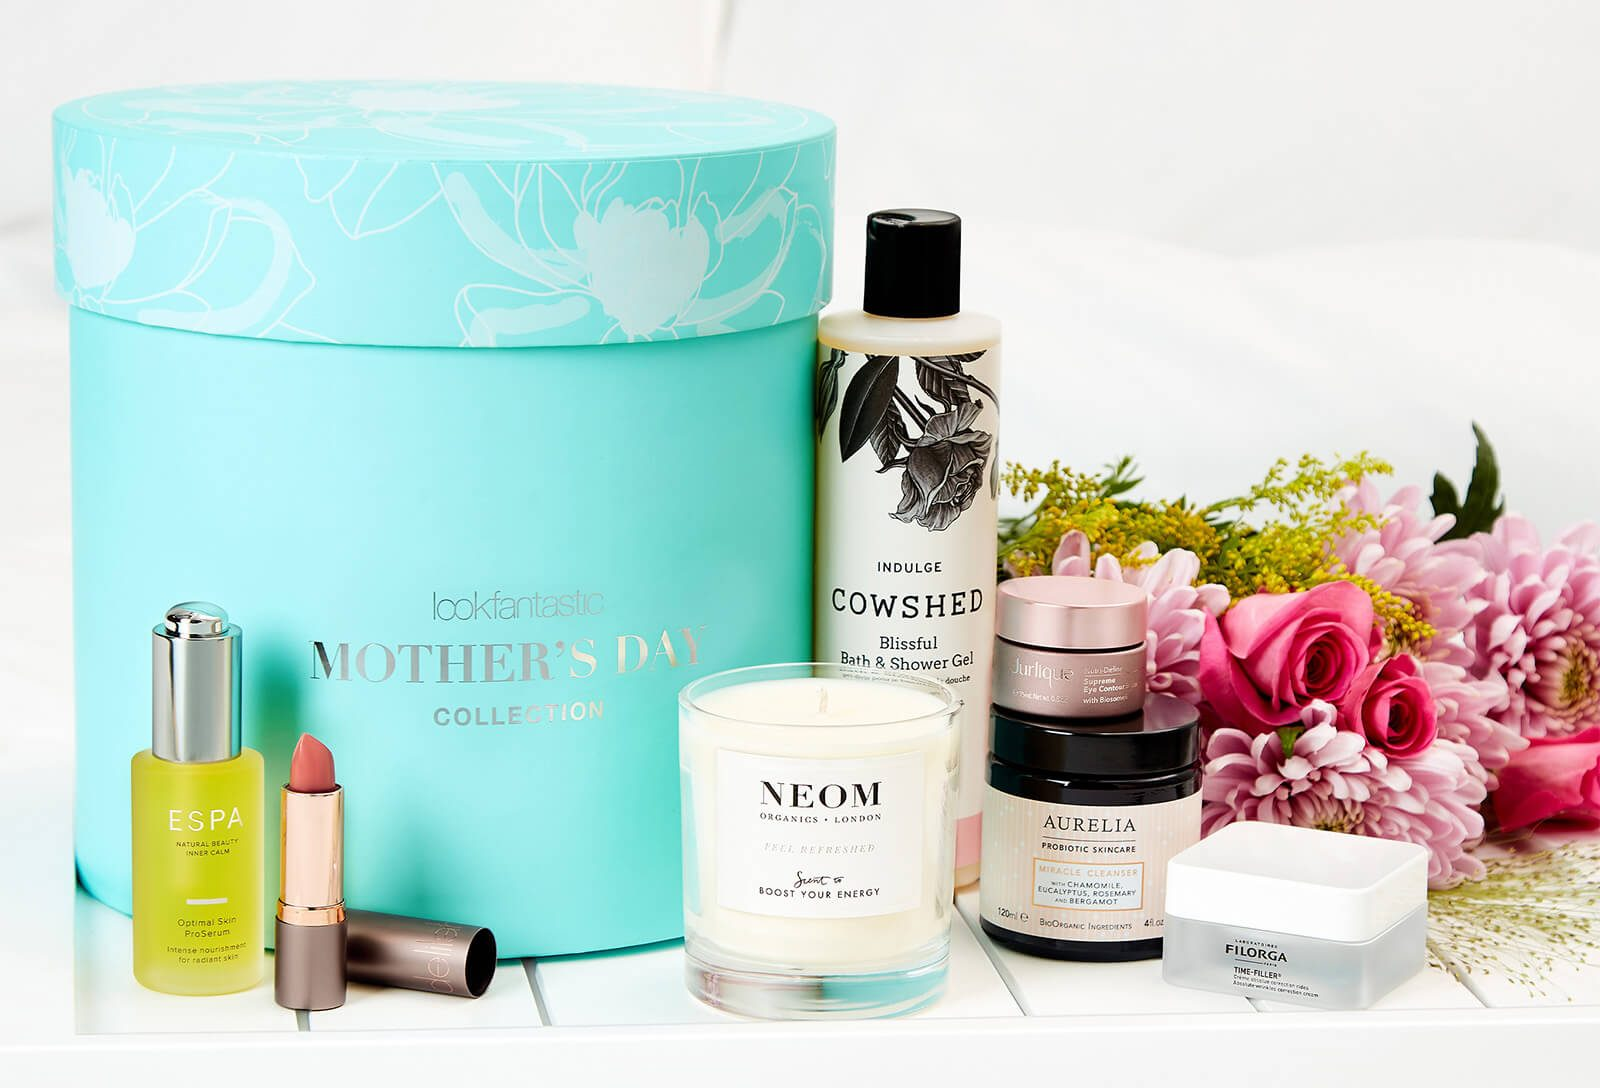 look fantastic mothers day collection 2020